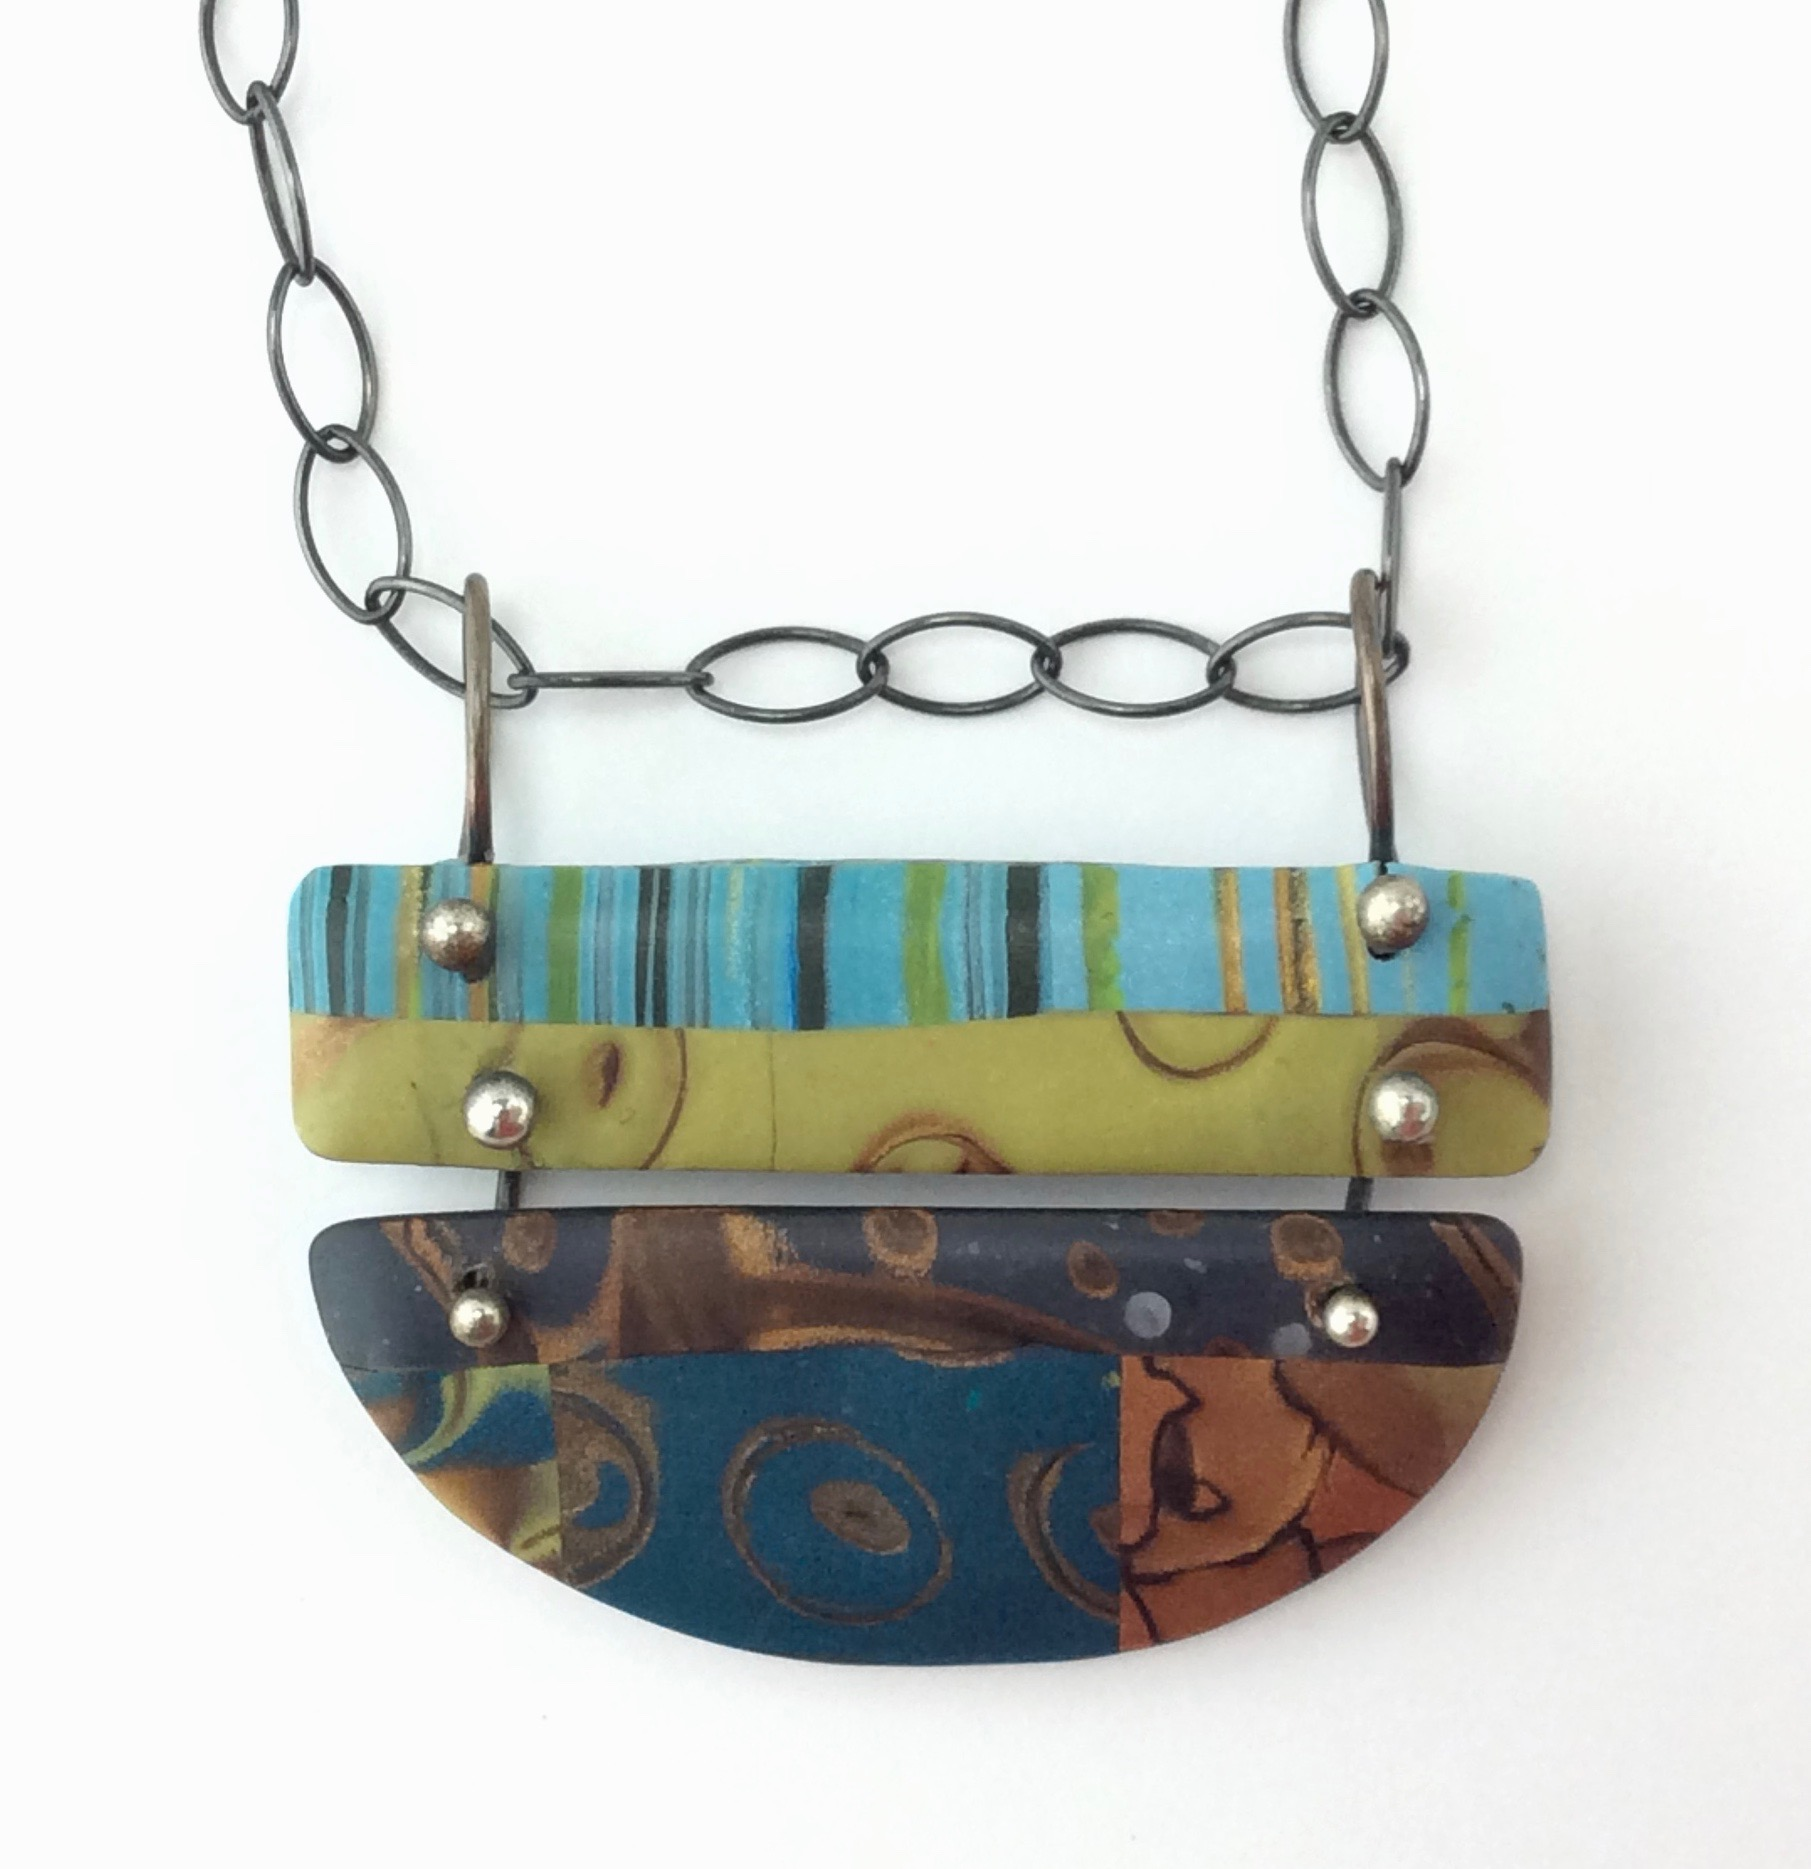 "Dancing Pendant  polymer clay millefiori marquetry, argentium silver, patinated sterling silver chain with fabricated sterling silver hook  30"" L x 1.5""W x 1"" H"